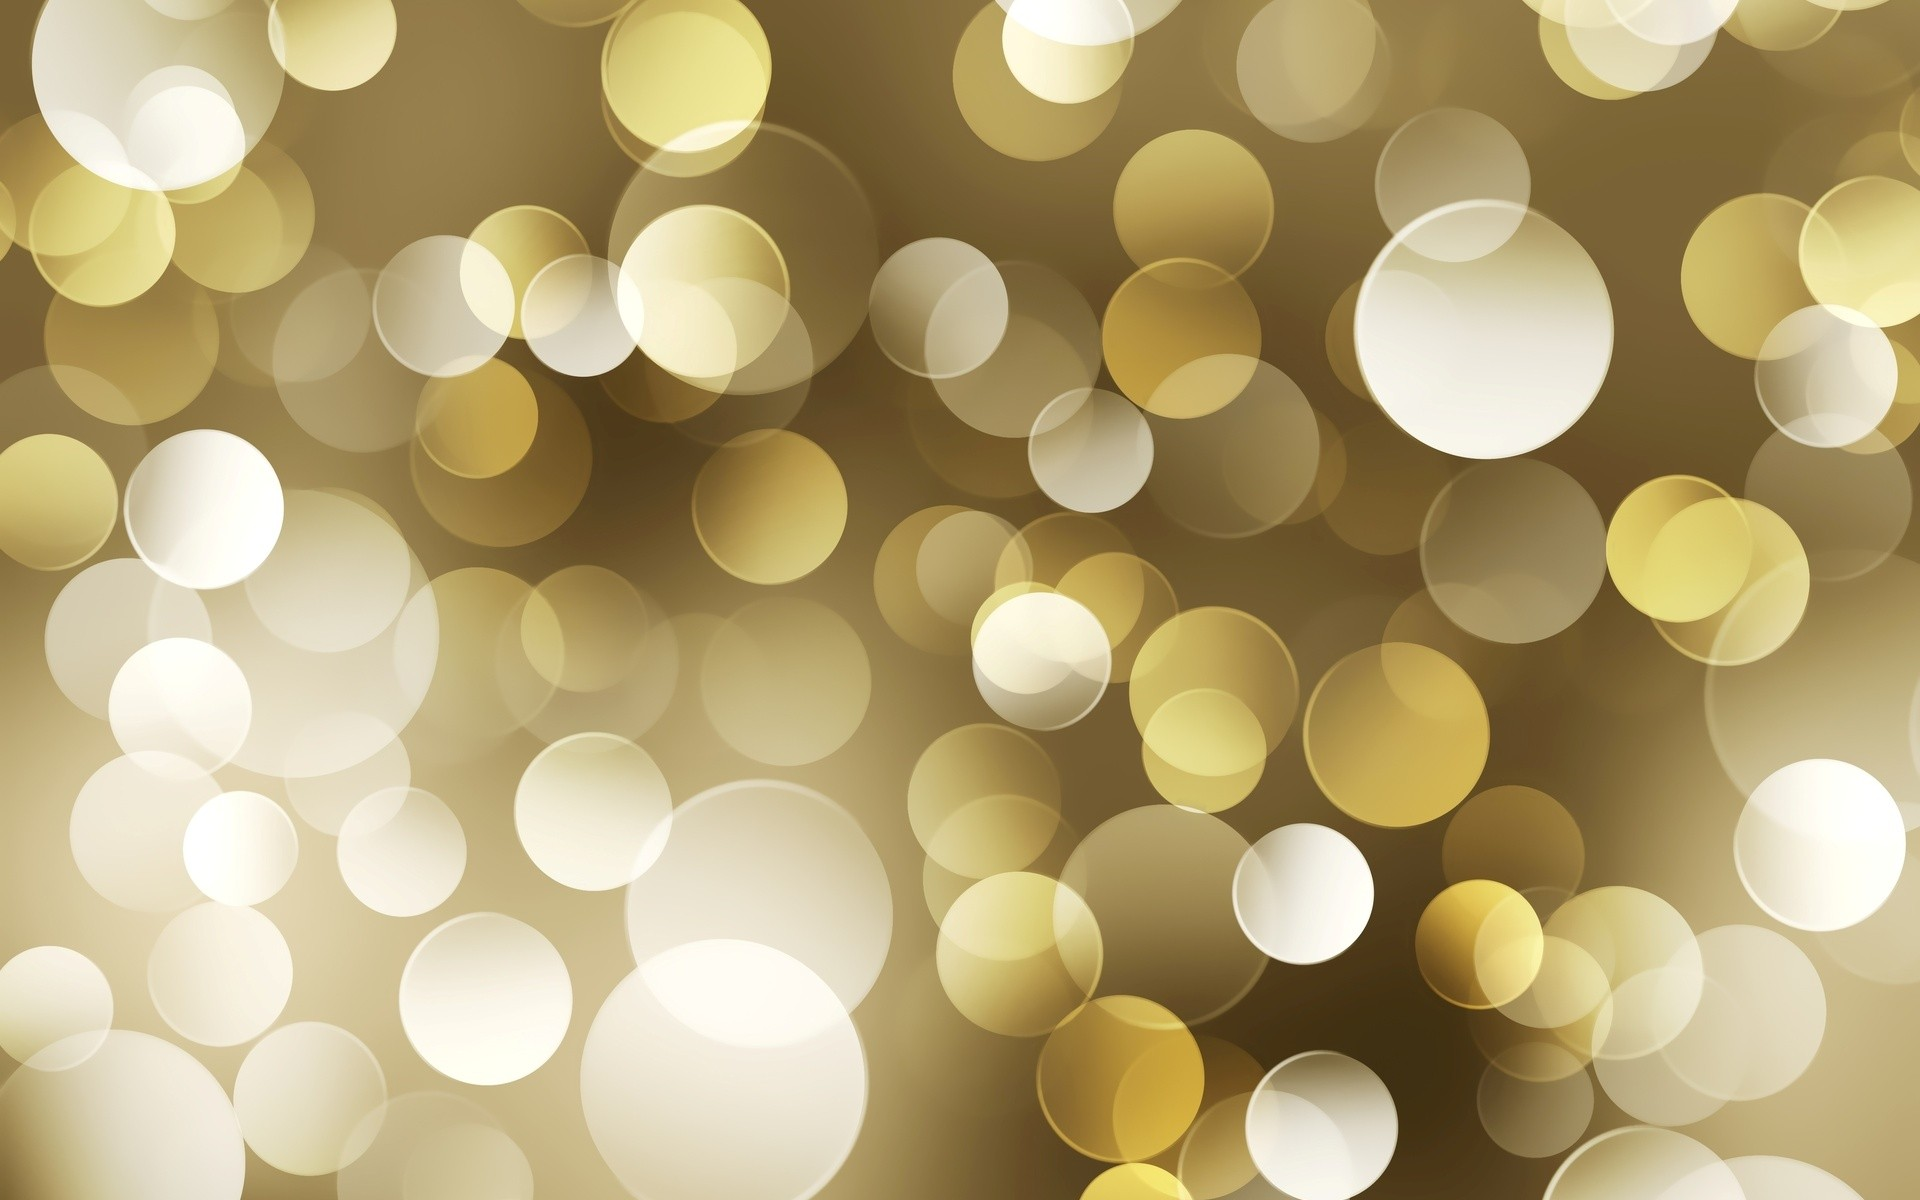 Gold and white desktop wallpaper wallpapersafari - Gold desktop background ...